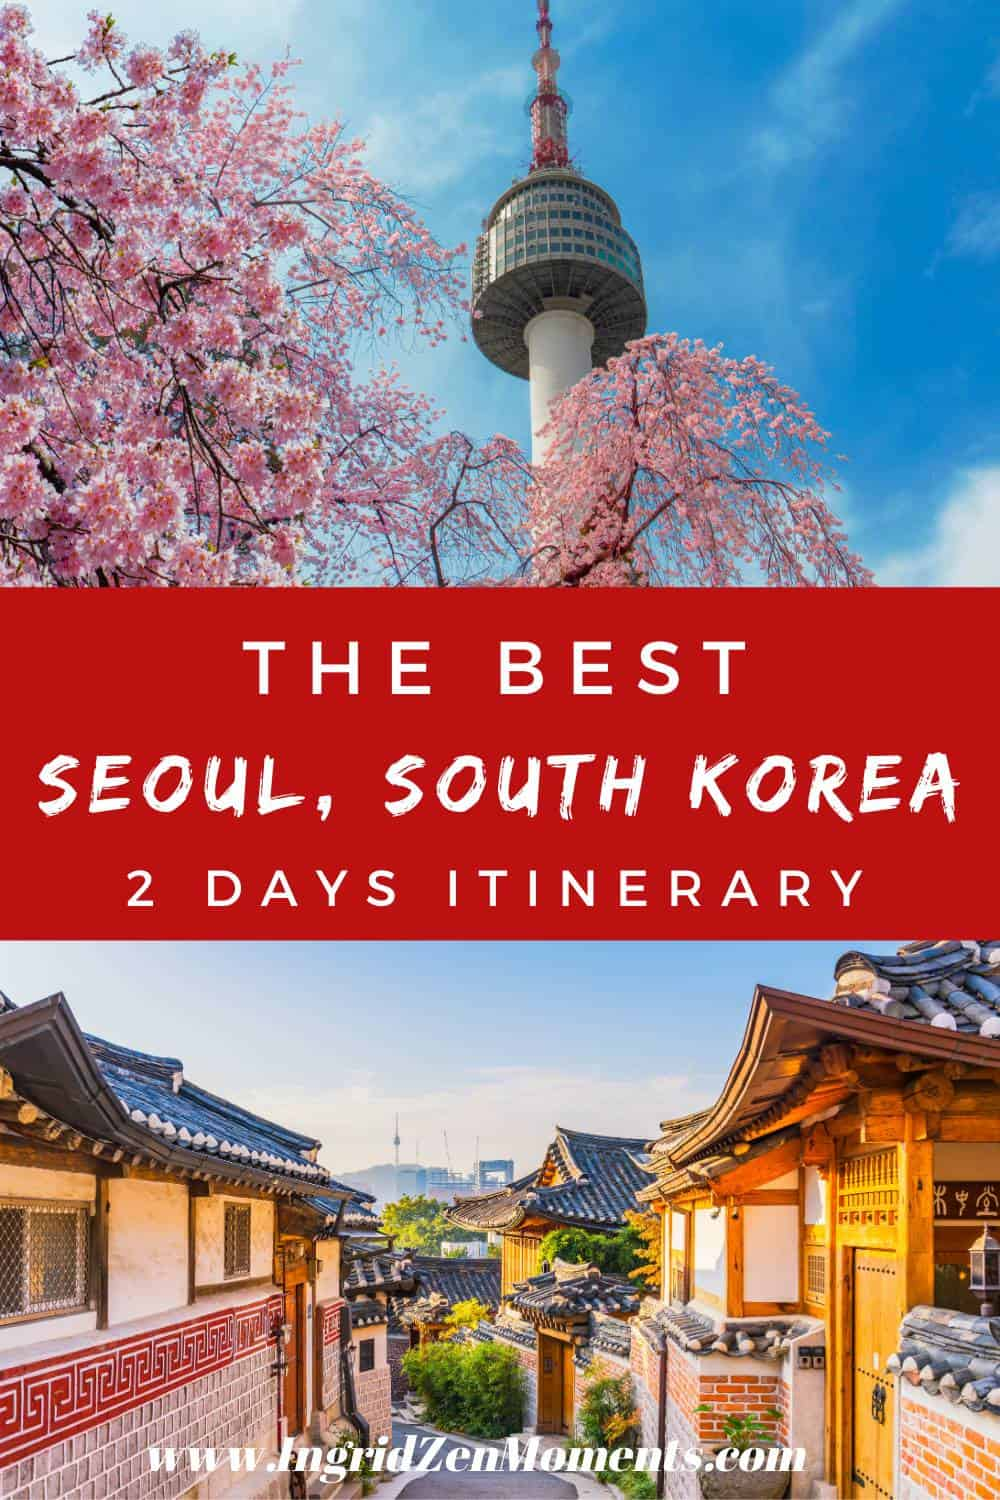 2 days itinerary Seoul, South Korea